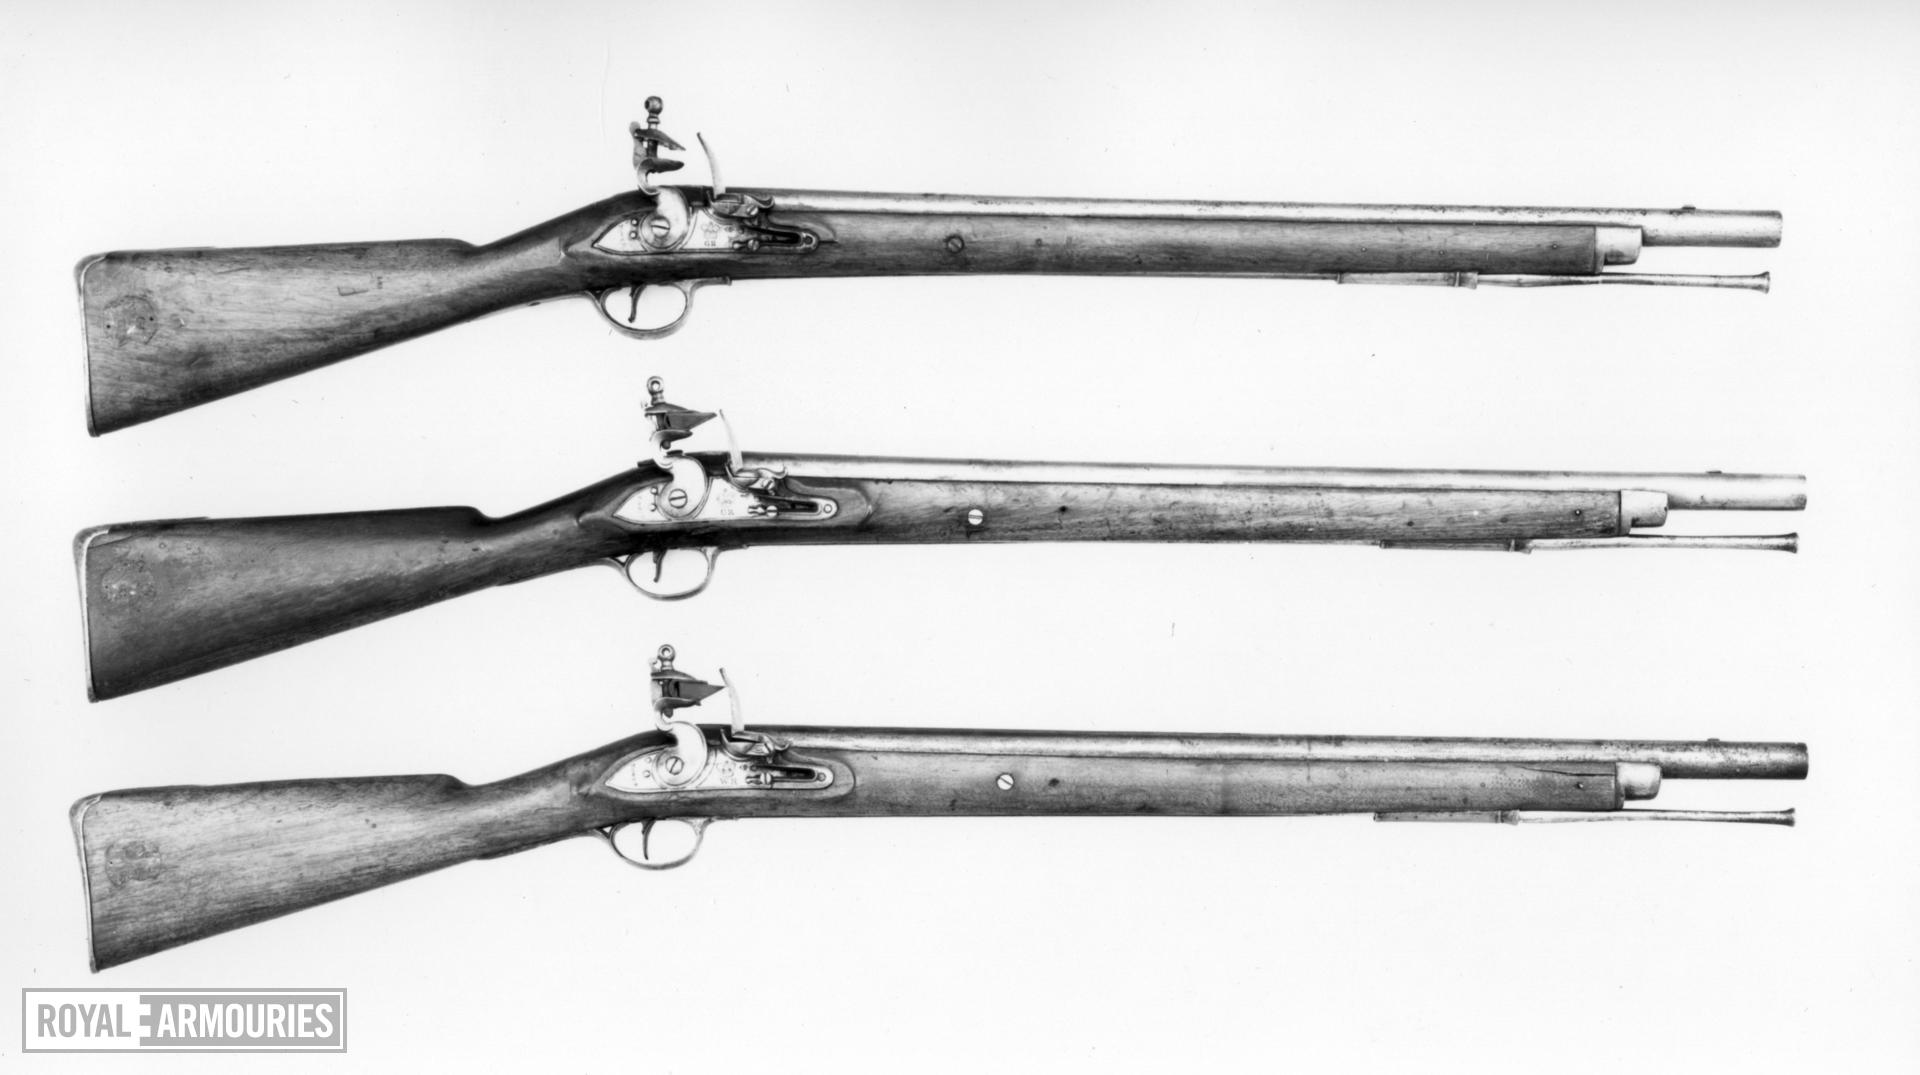 Flintlock muzzle-loading military carbine - Pattern 1796 Heavy Dragoon Carbine